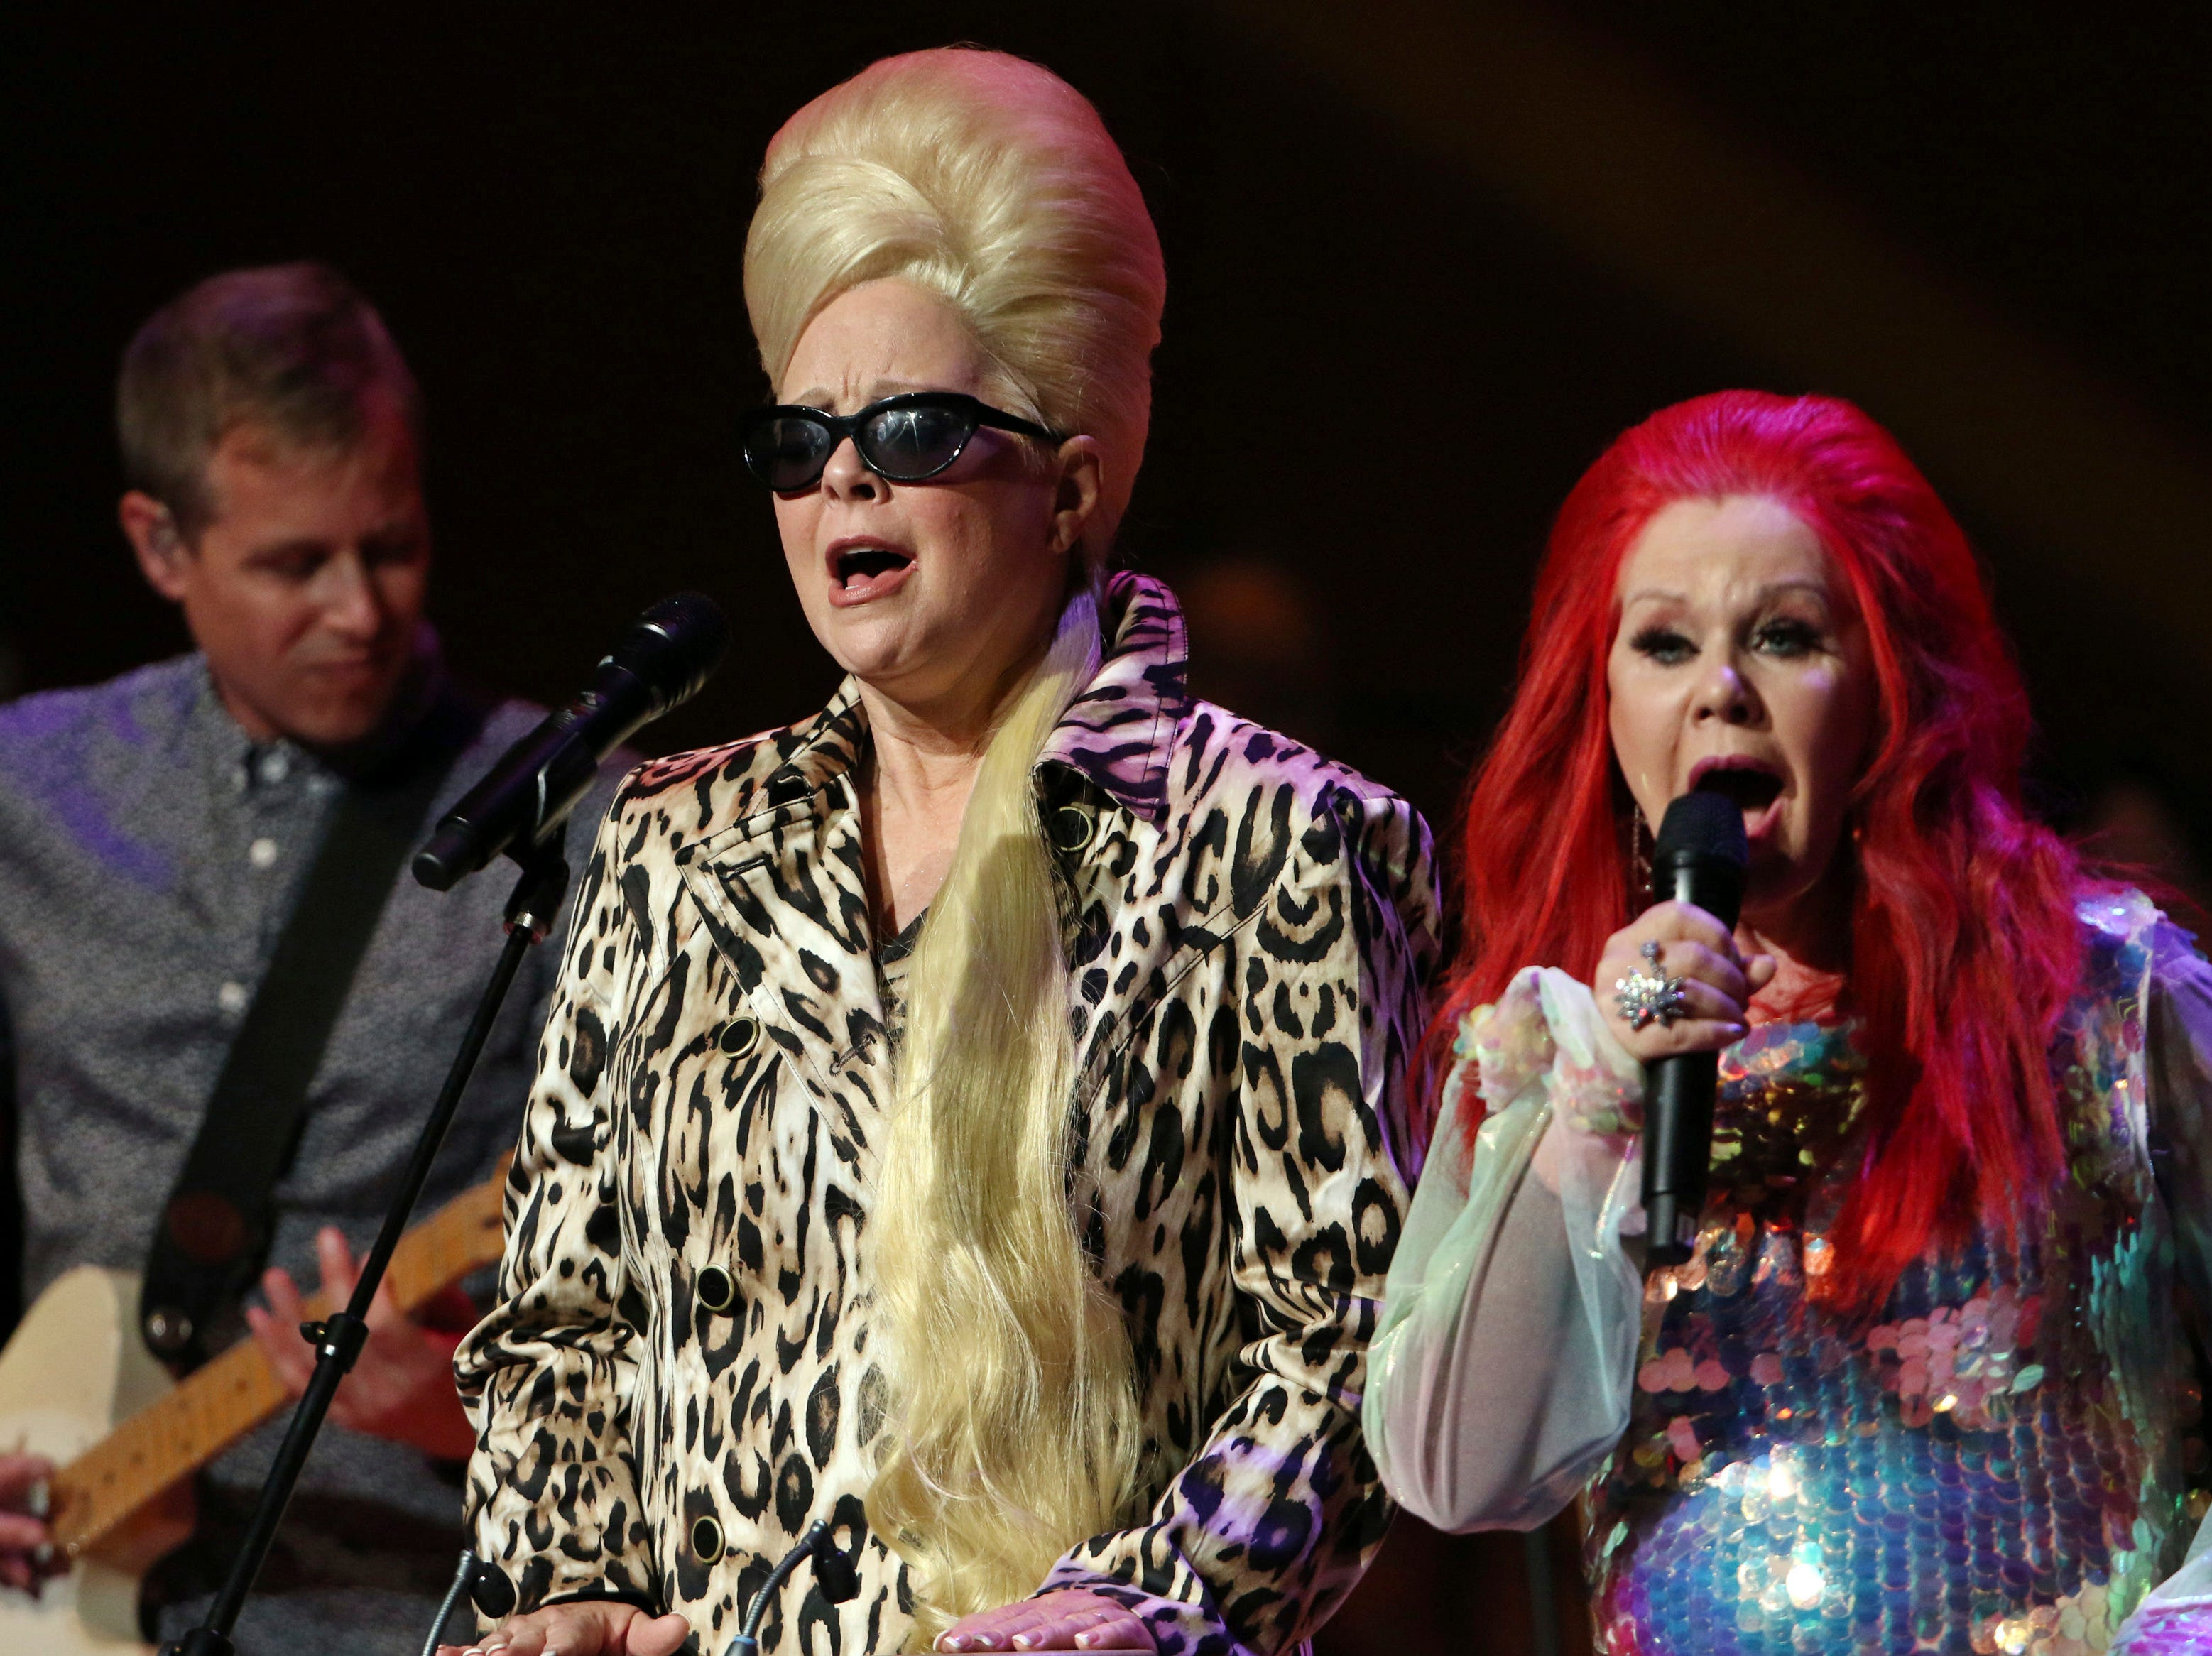 Kate Pierson and Cindy Wilson with The B-52s perform Sept. 14, 2017, at Atlanta Symphony Hall. The B-52s will perform at SunFest in West Palm Beach.